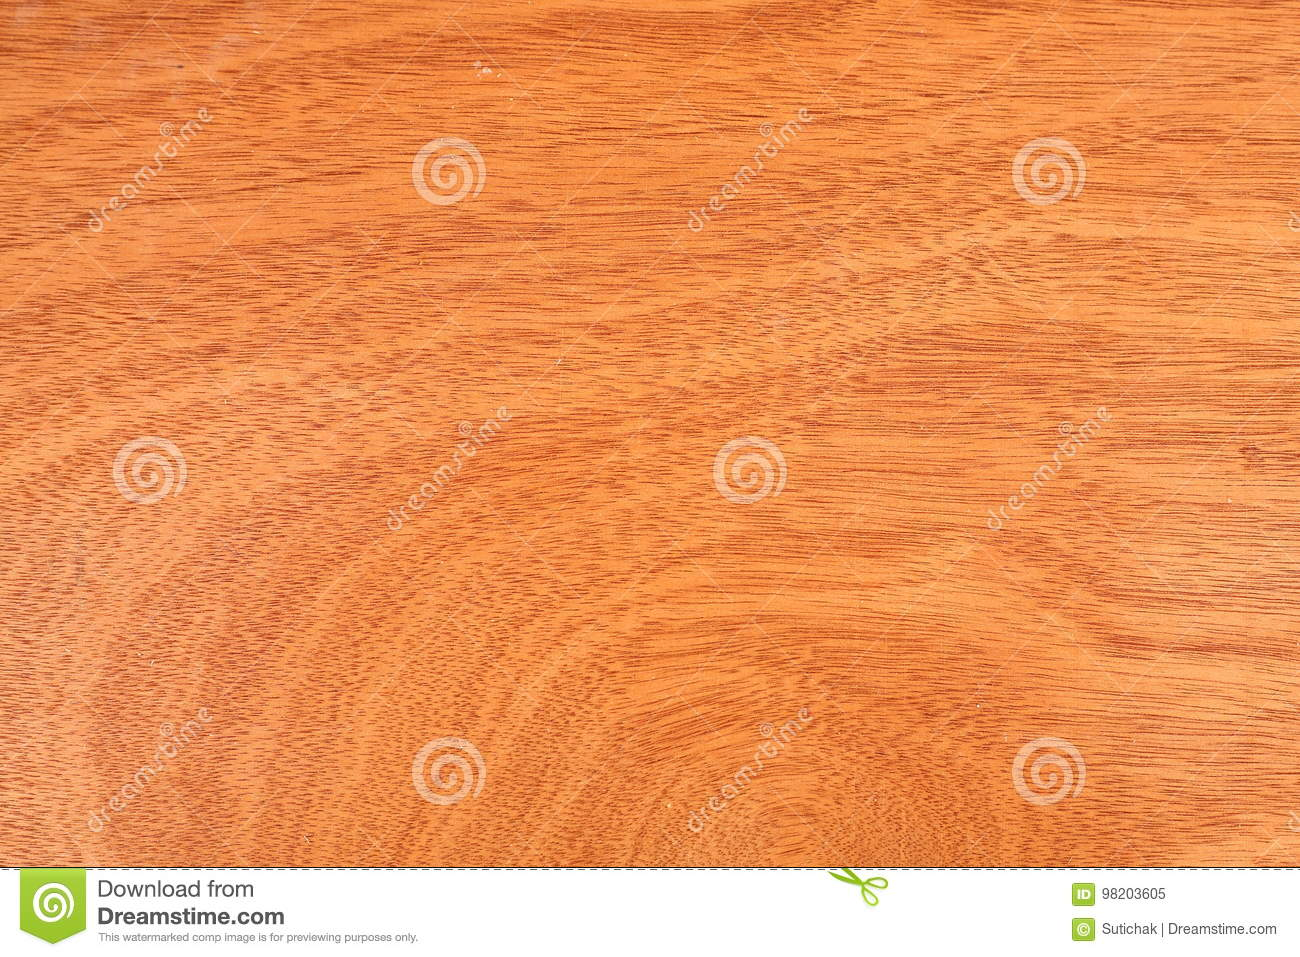 Veneer wood panel texture, brown plywood wooden formica board